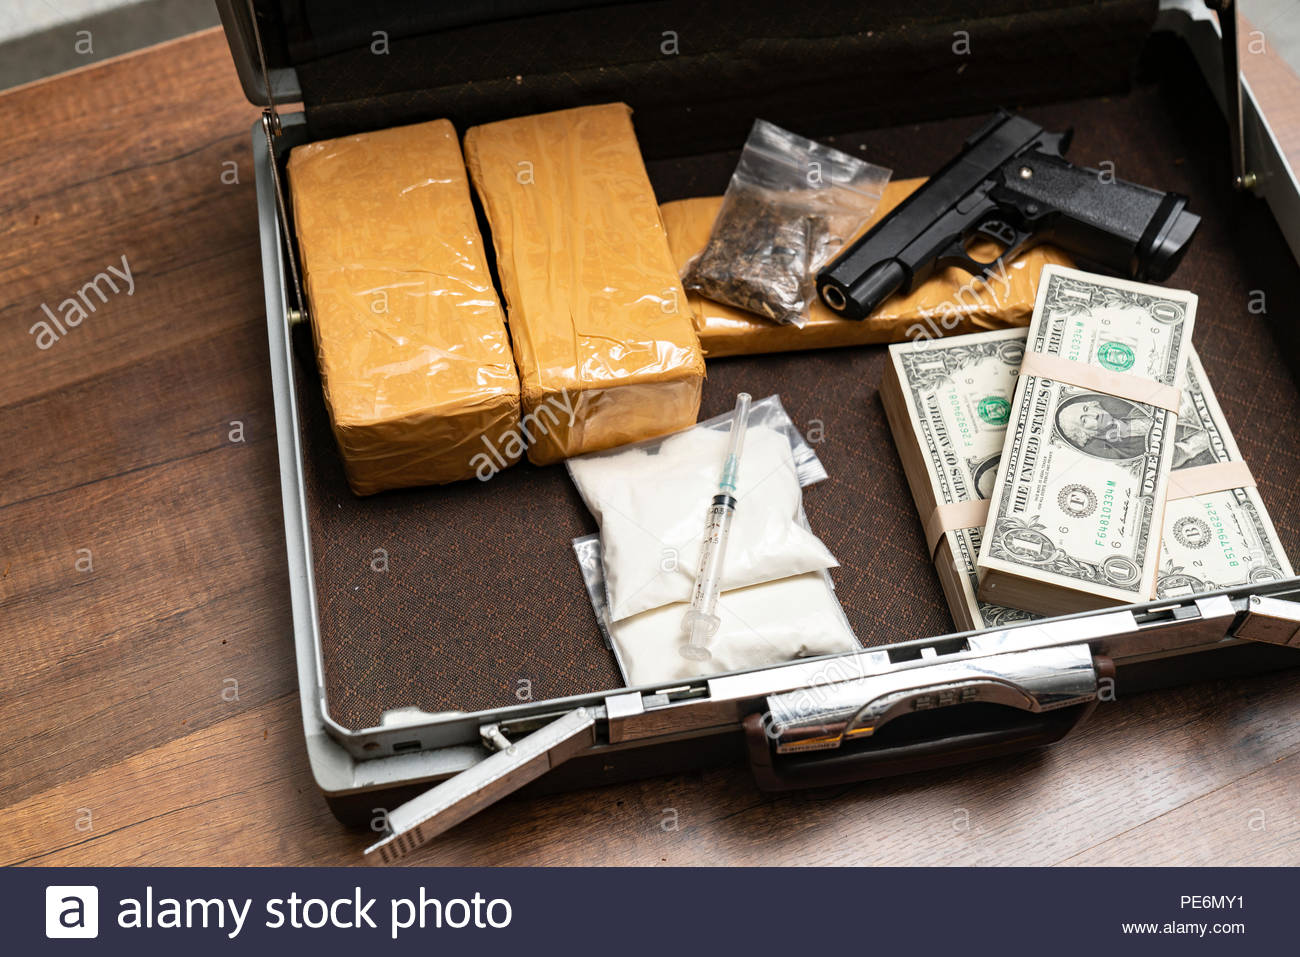 Drug syringe and cooked heroin - Stock Image